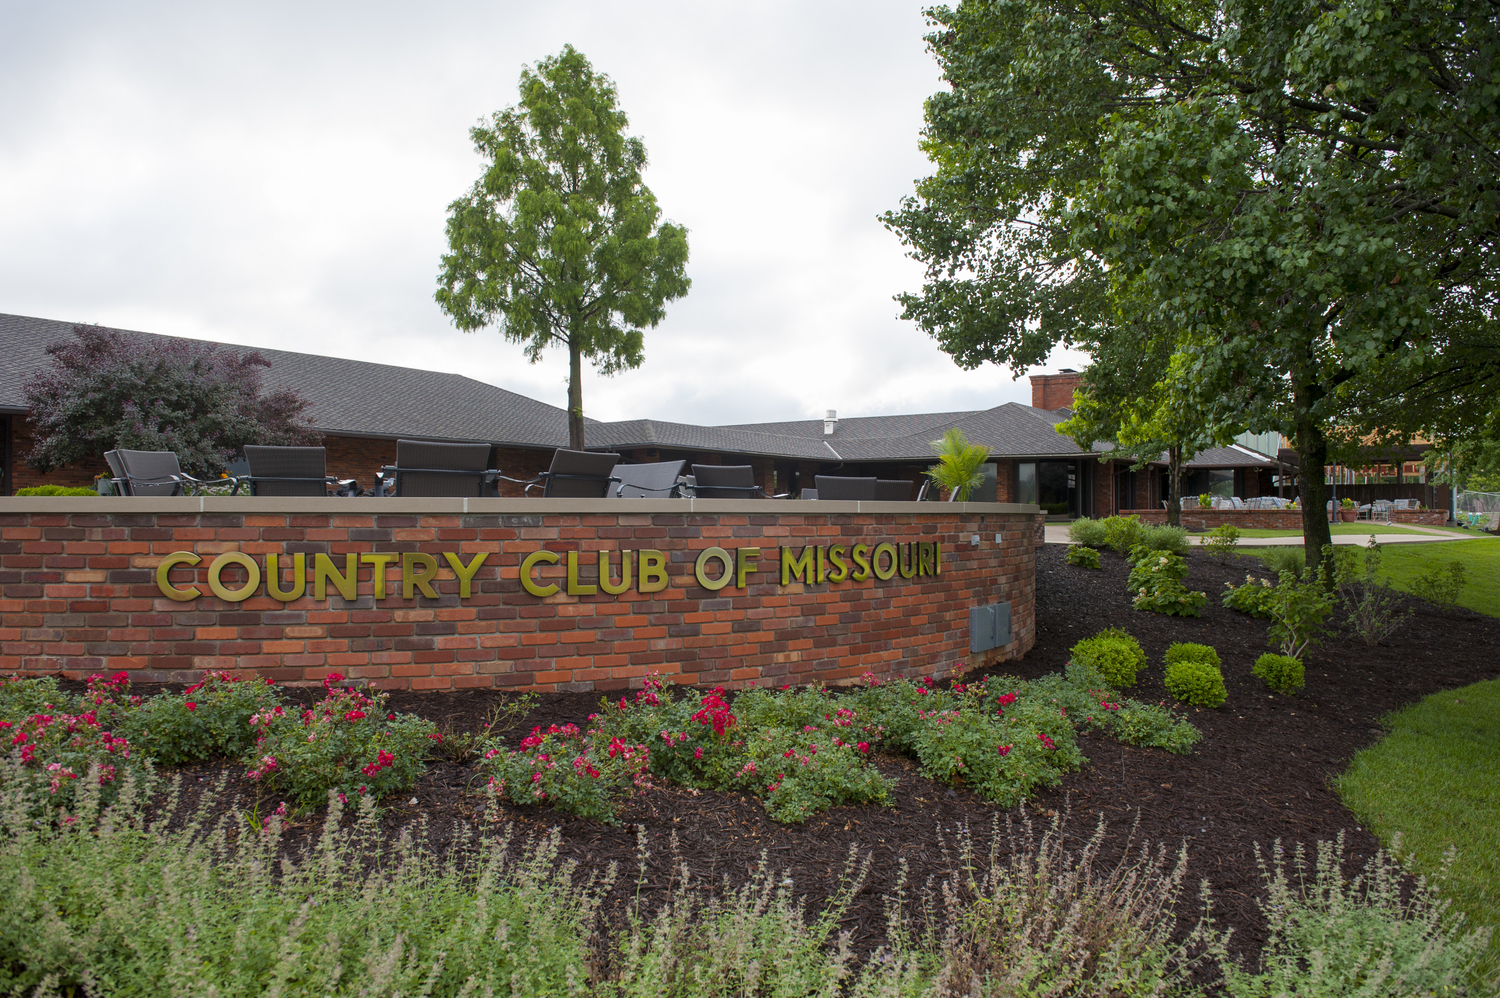 Country Club of Missouri - CCMO